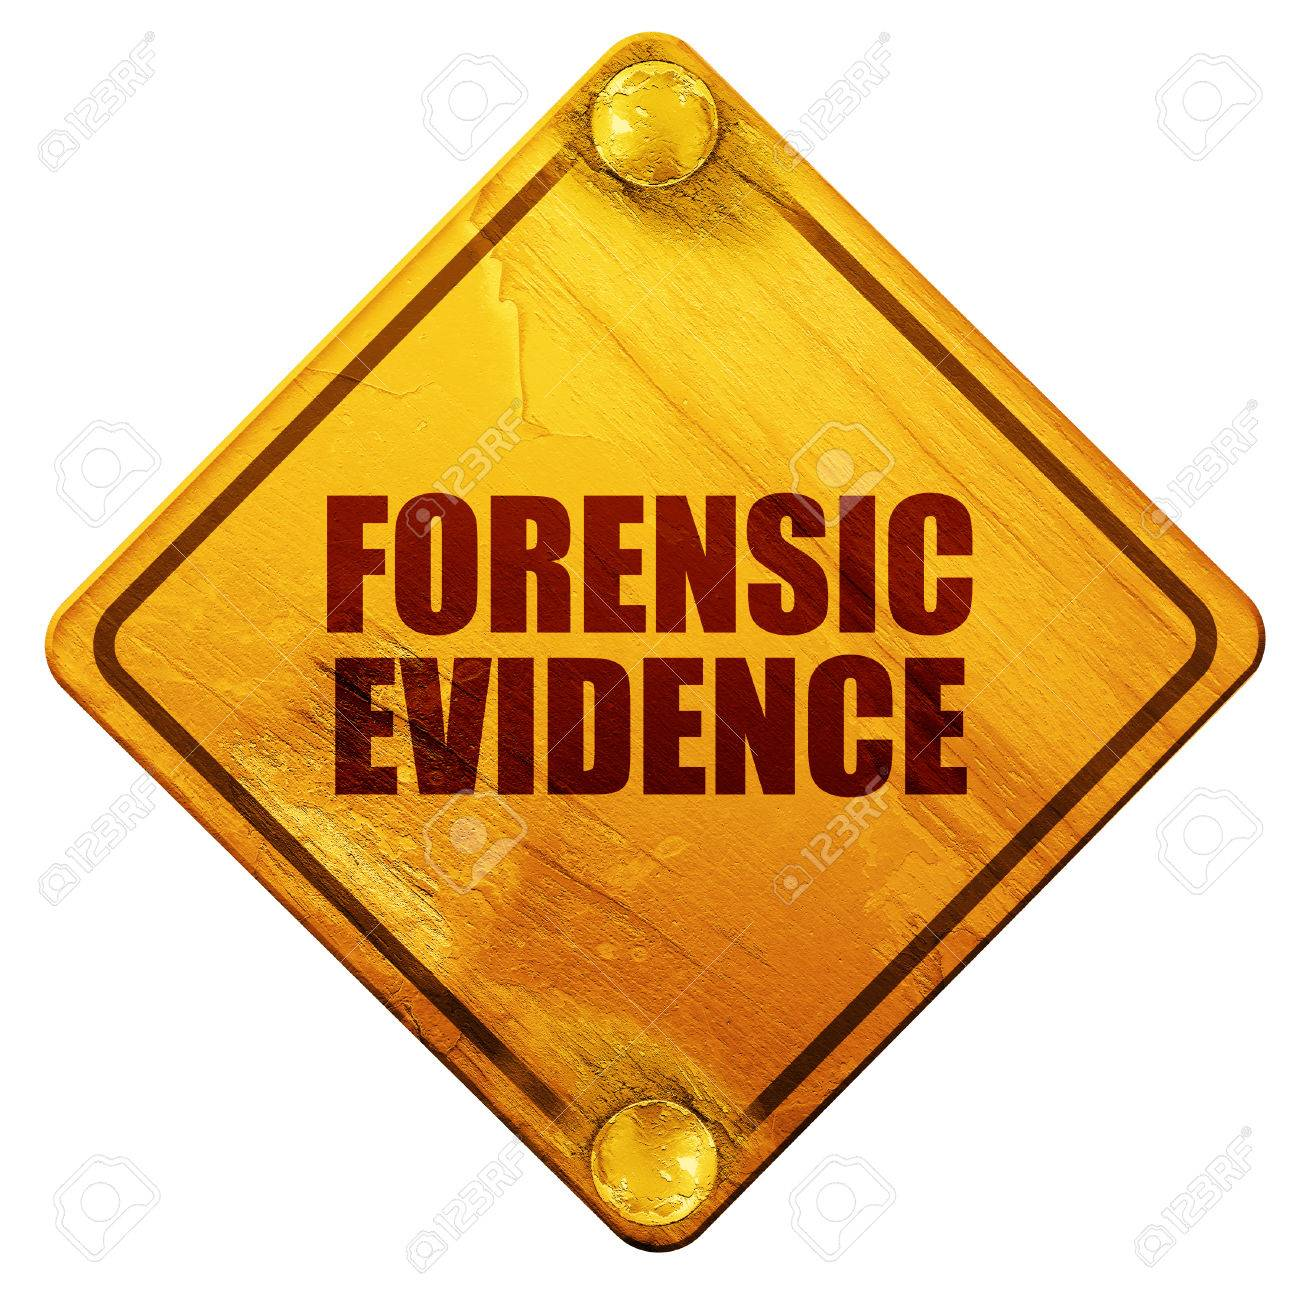 Forensic Evidence 3d Rendering Yellow Road Sign On A White Stock Photo Picture And Royalty Free Image Image 56200941